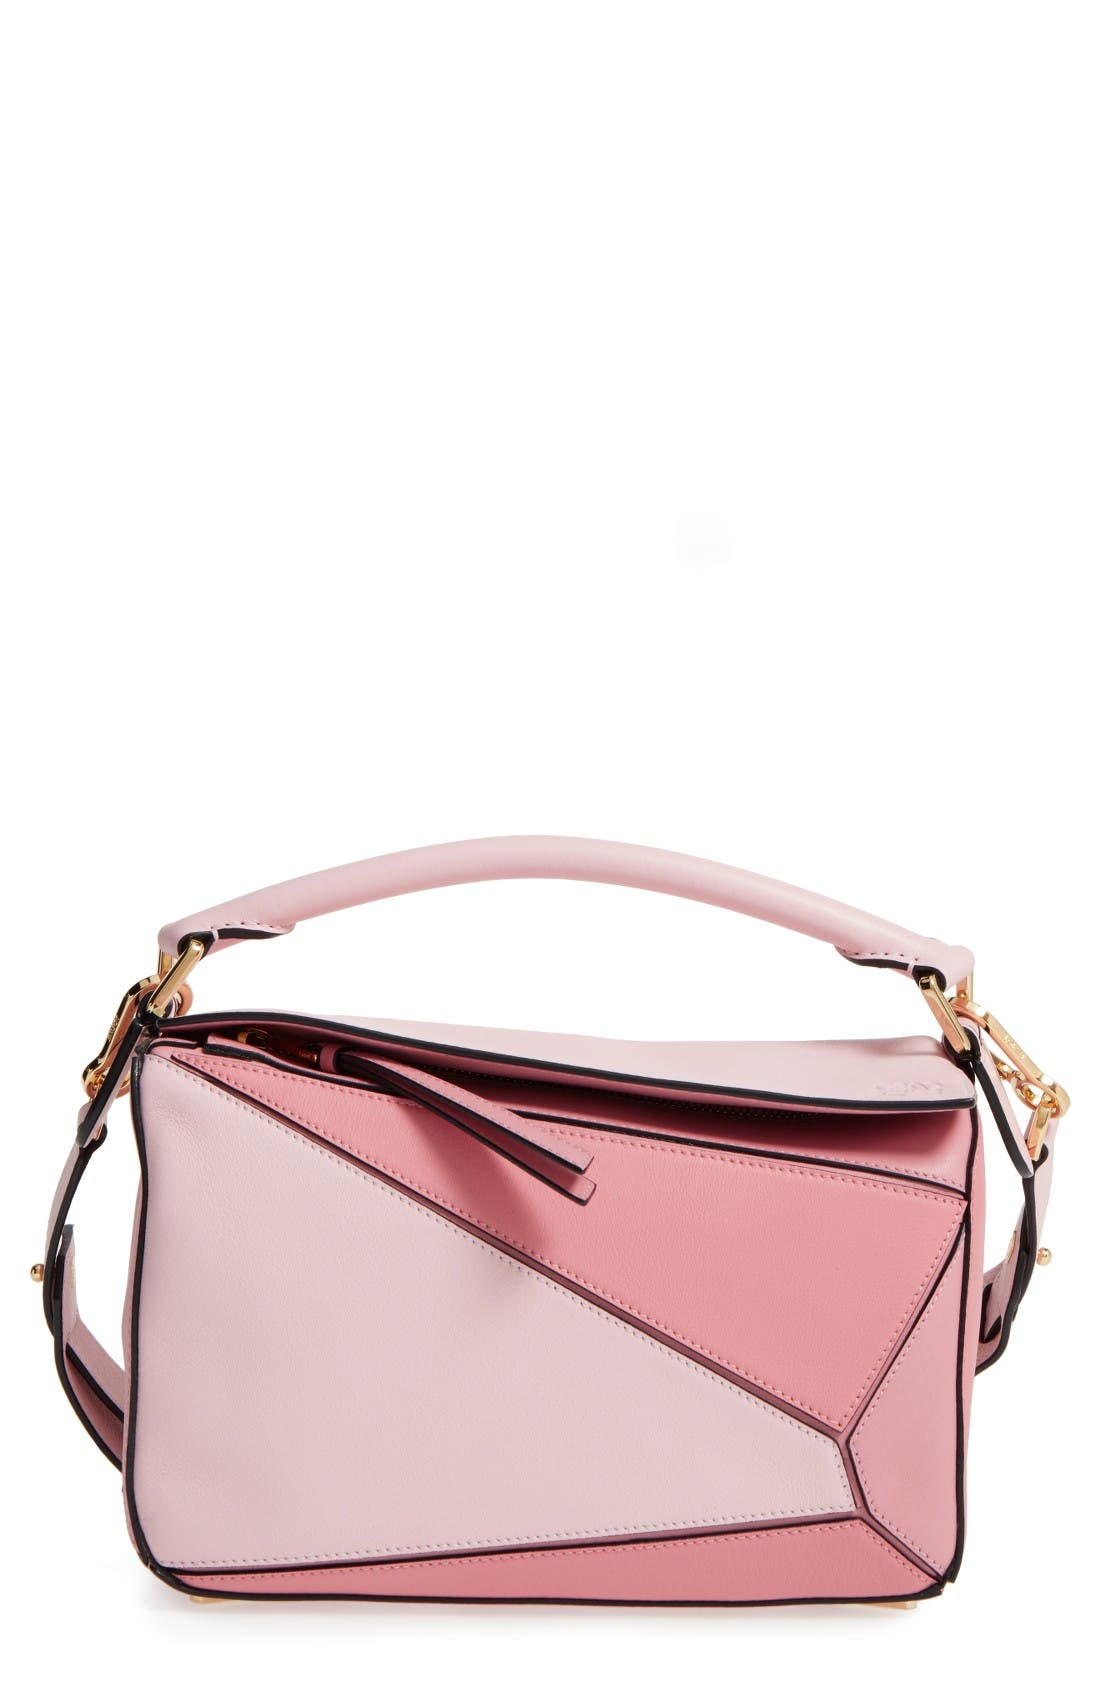 Alternate Image 1 Selected - Loewe Small Puzzle Leather Shoulder Bag